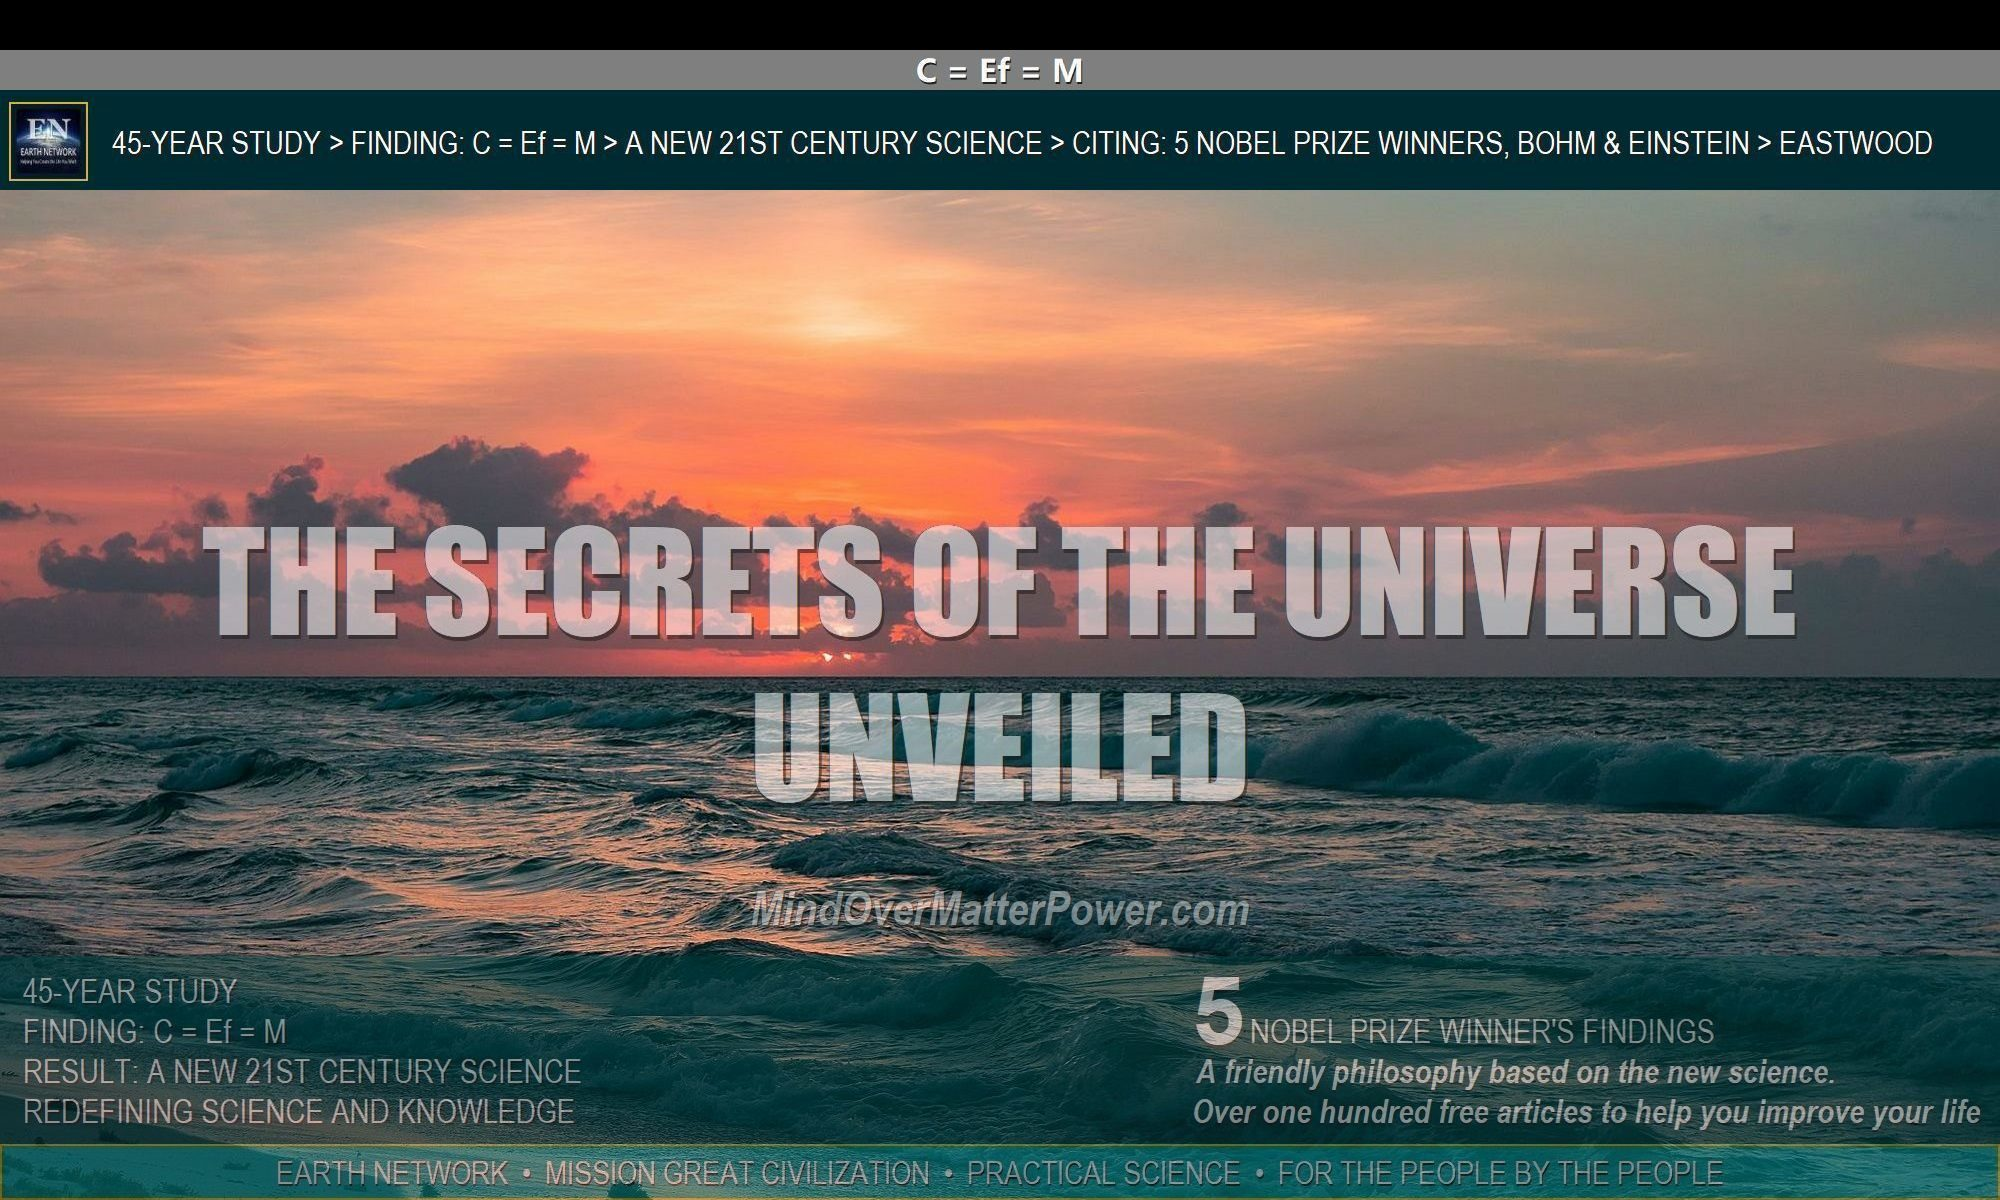 Mysterious ocean begs the question how can I create what I want? The secrets of the universe reveal how you can materialize anything.